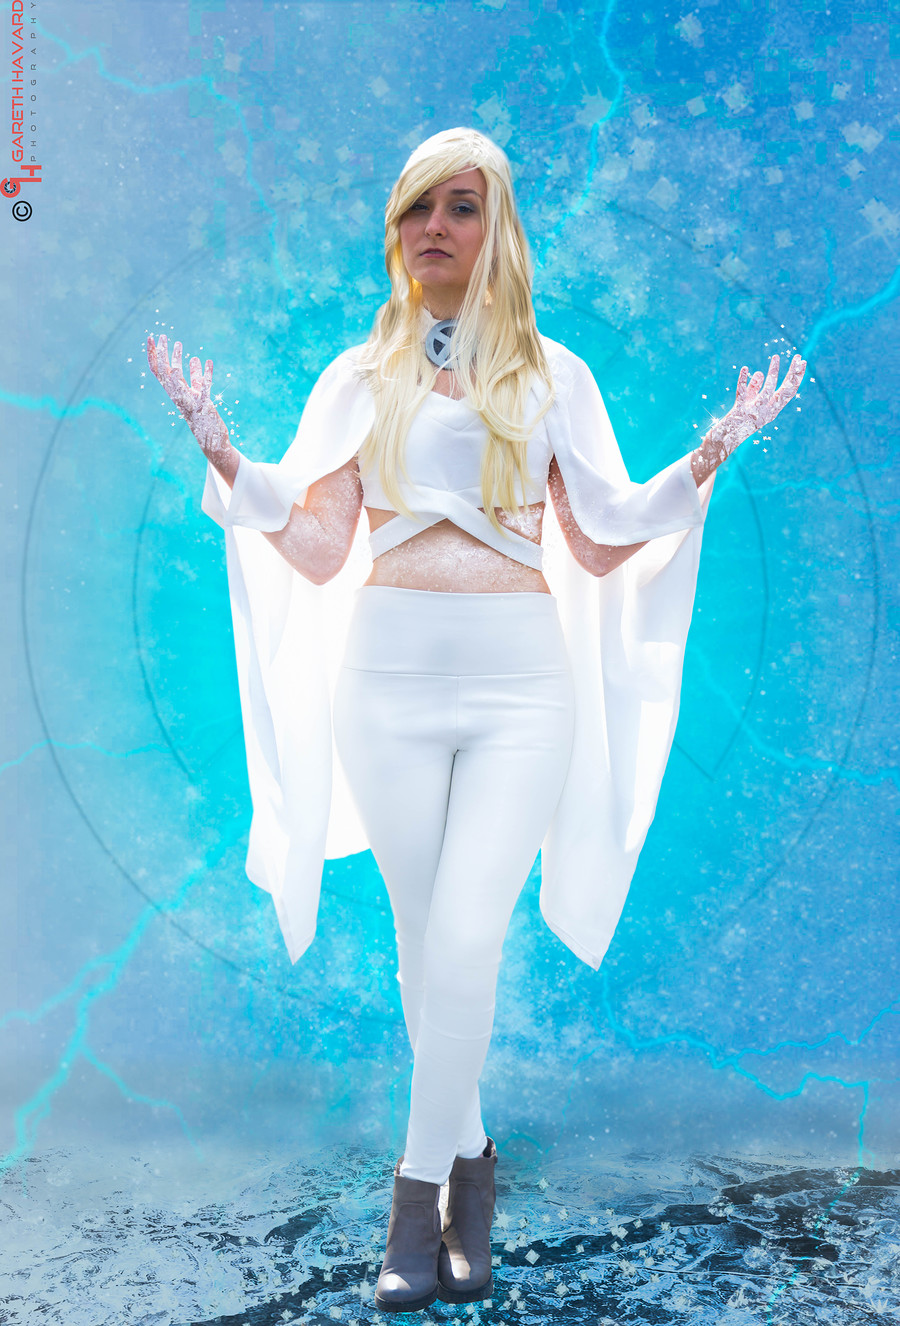 Emma Frost - Cosplay / Photography by Gareth Havard Photography, Post processing by Unmadesugar Photography / Uploaded 14th July 2016 @ 07:47 PM